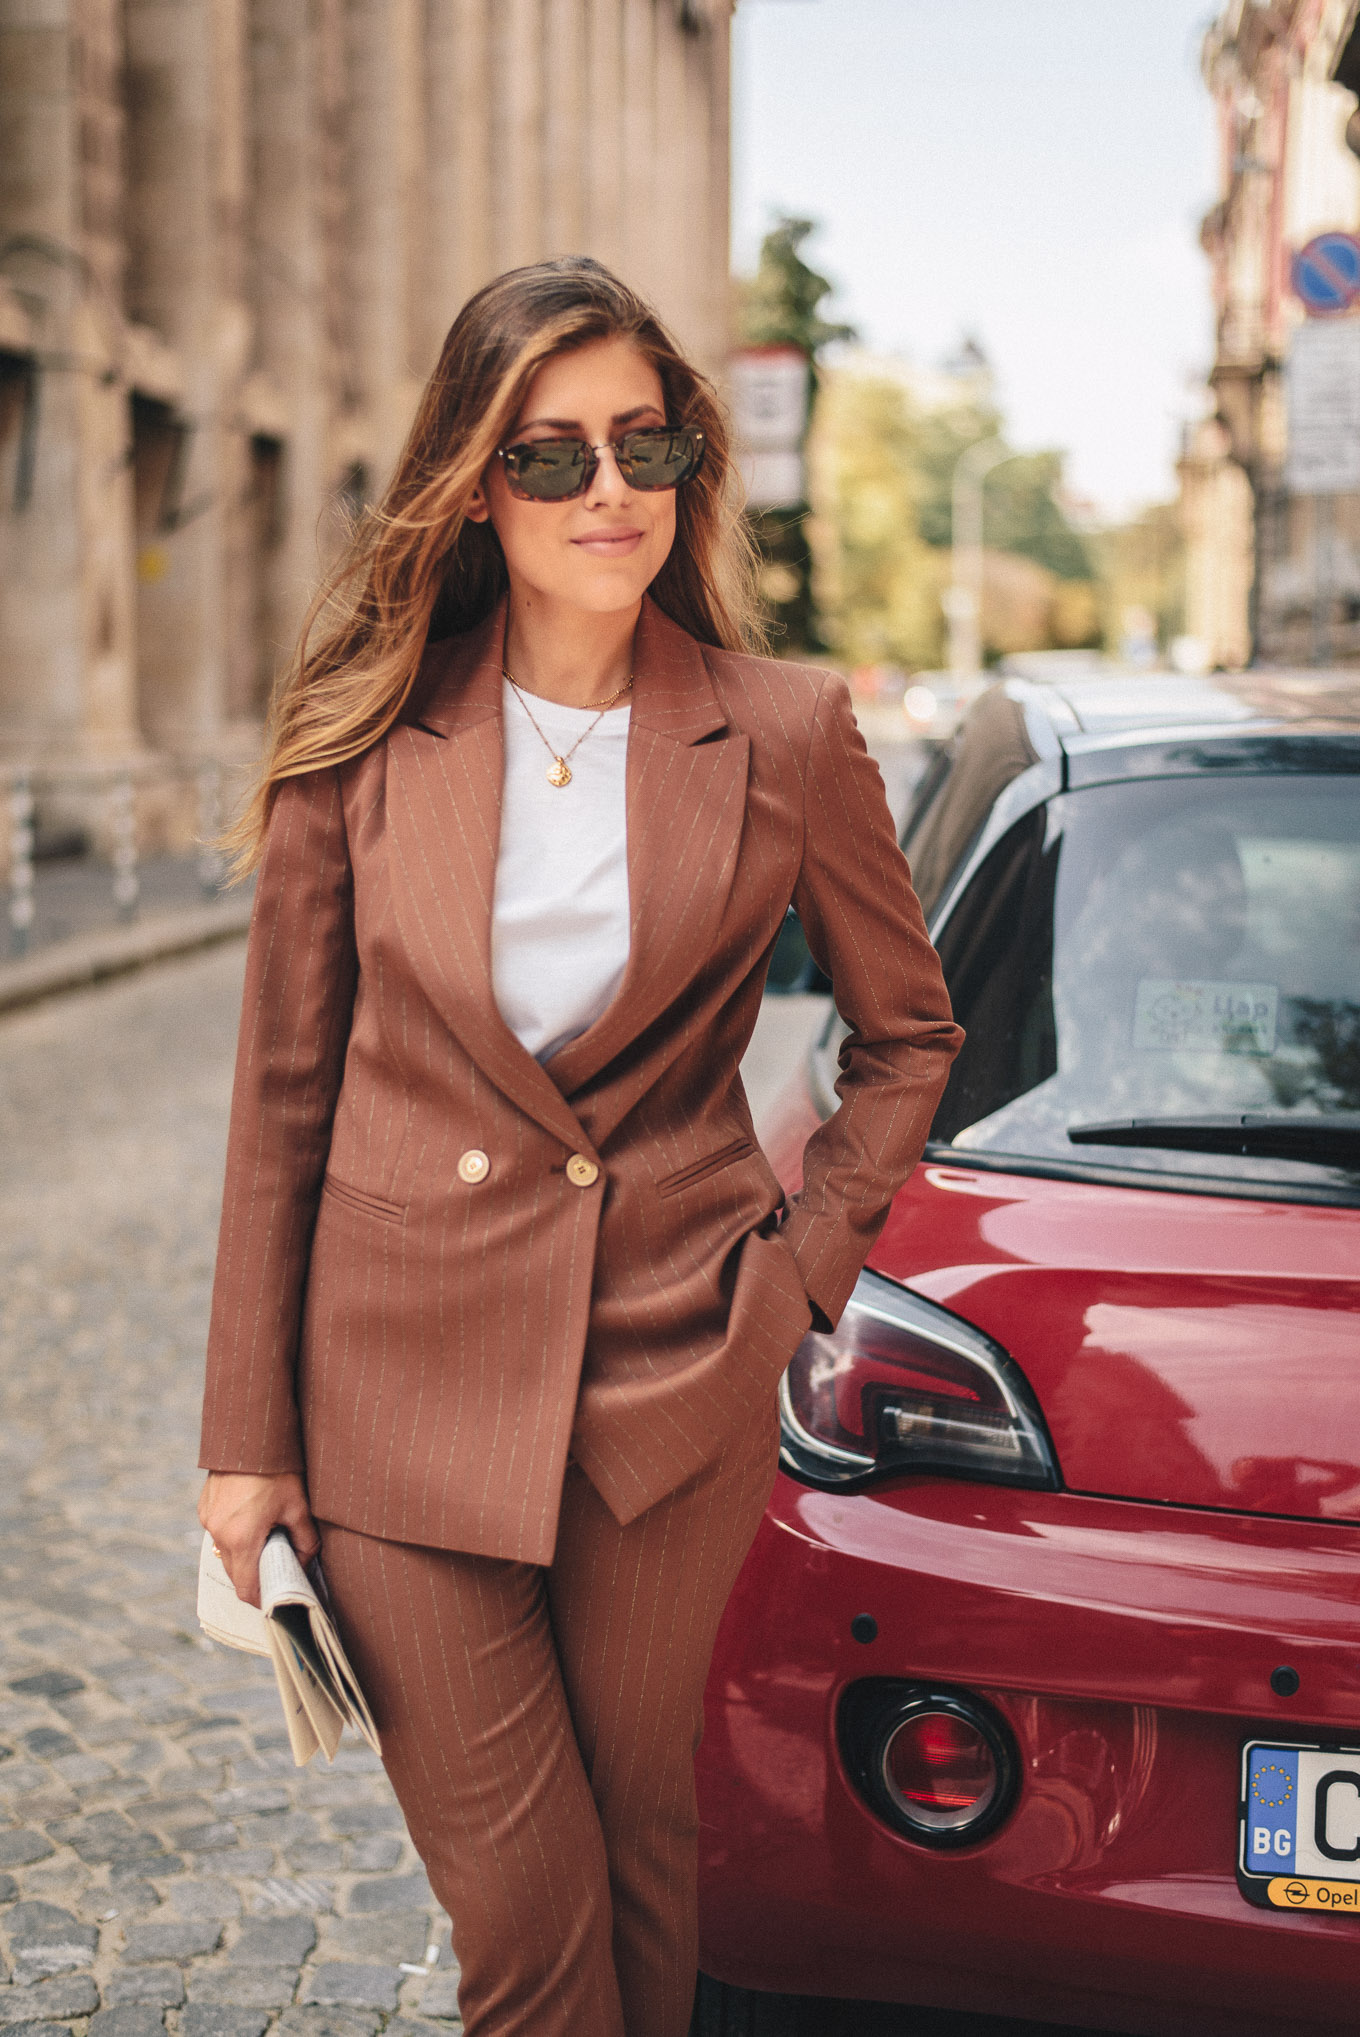 wearing brown suit in the city